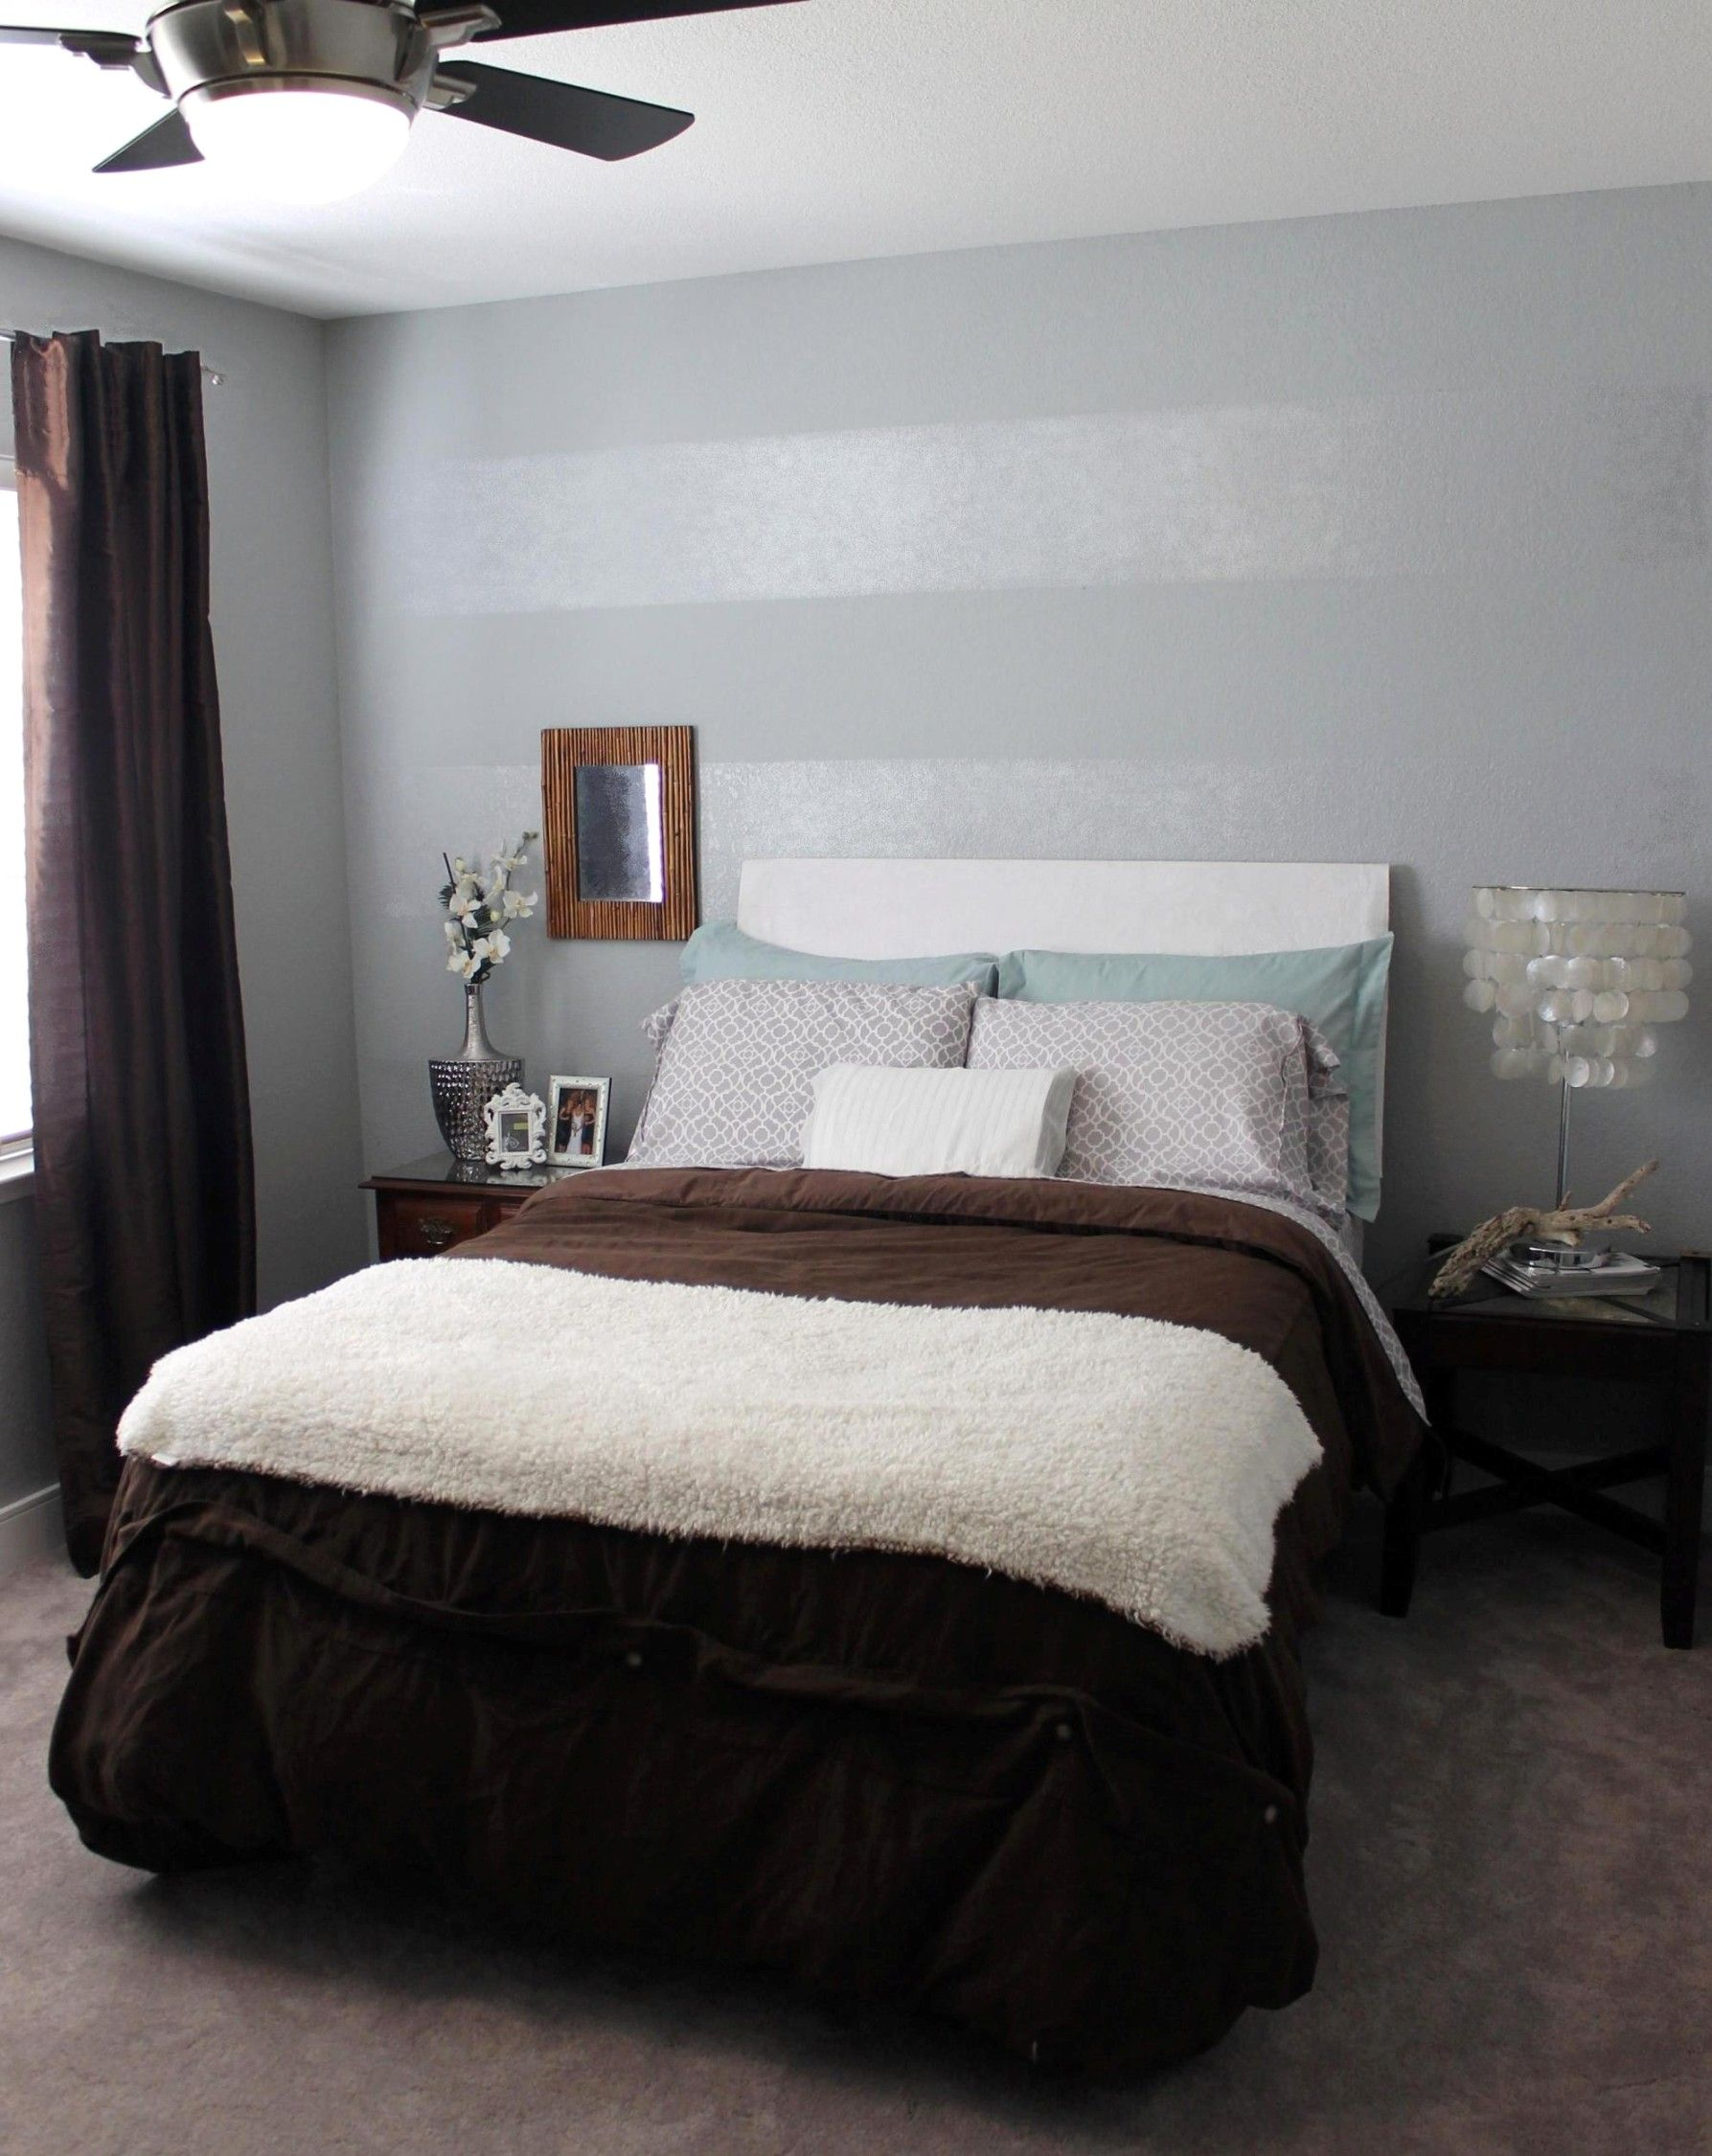 Going To Do This Tone On Tone Striped Accent Wall In Silver - Striped accent walls bedrooms